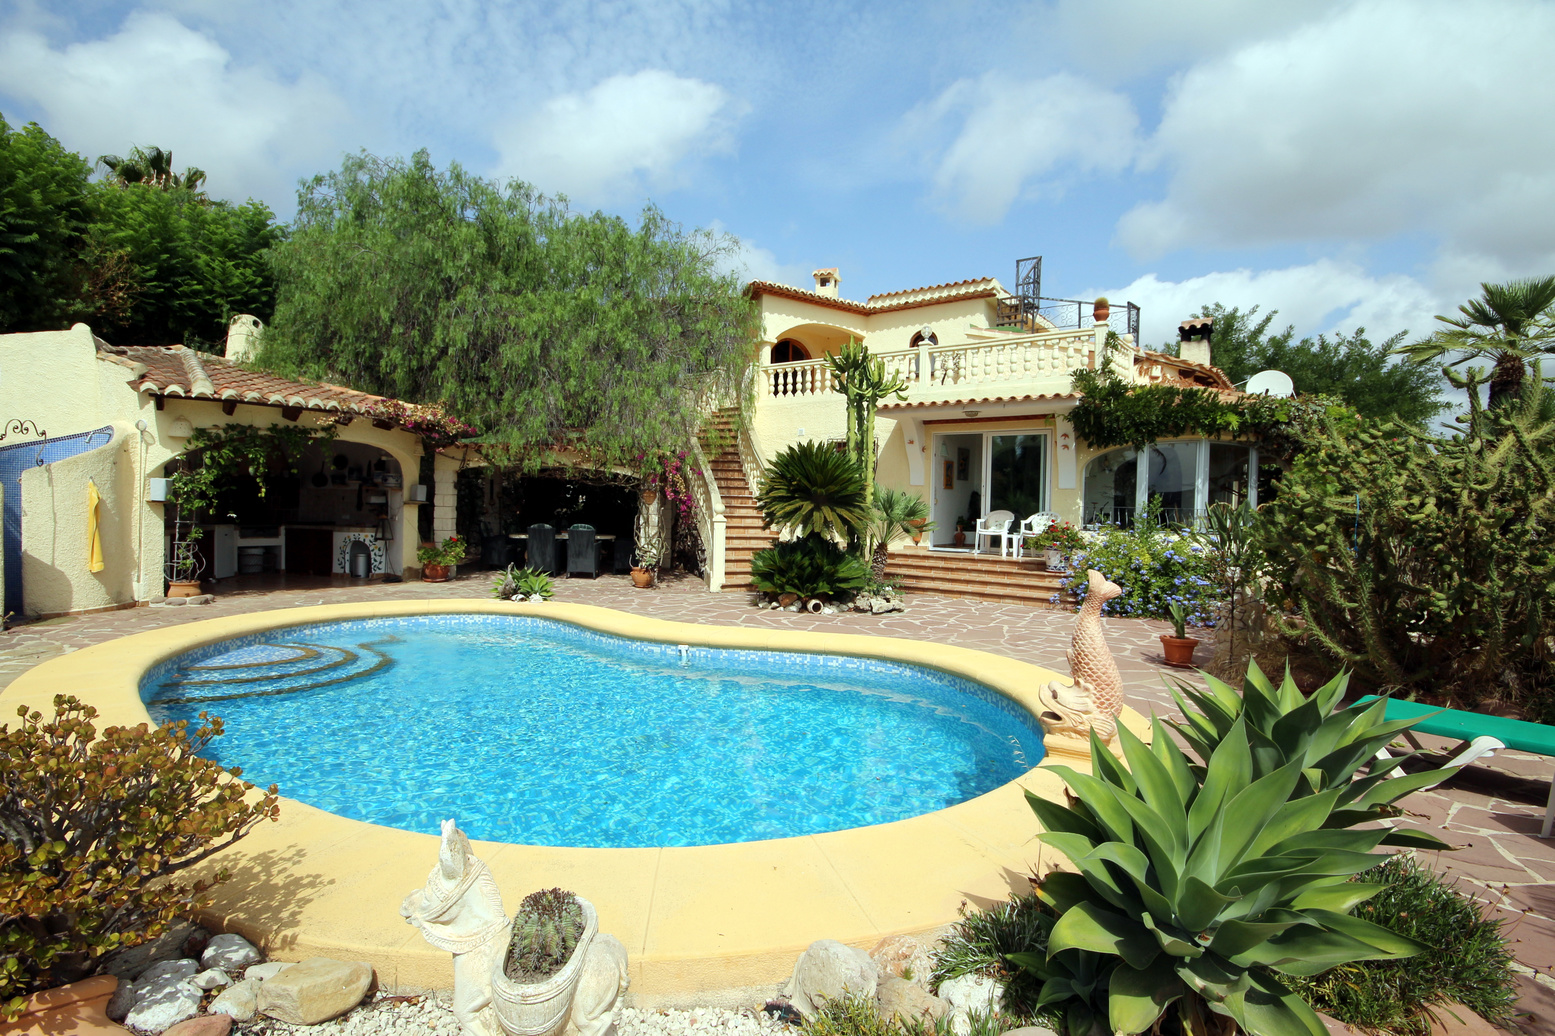 SPECTACULAR LARGE VILLA ON A 2476 SQUARE METRE PLOT